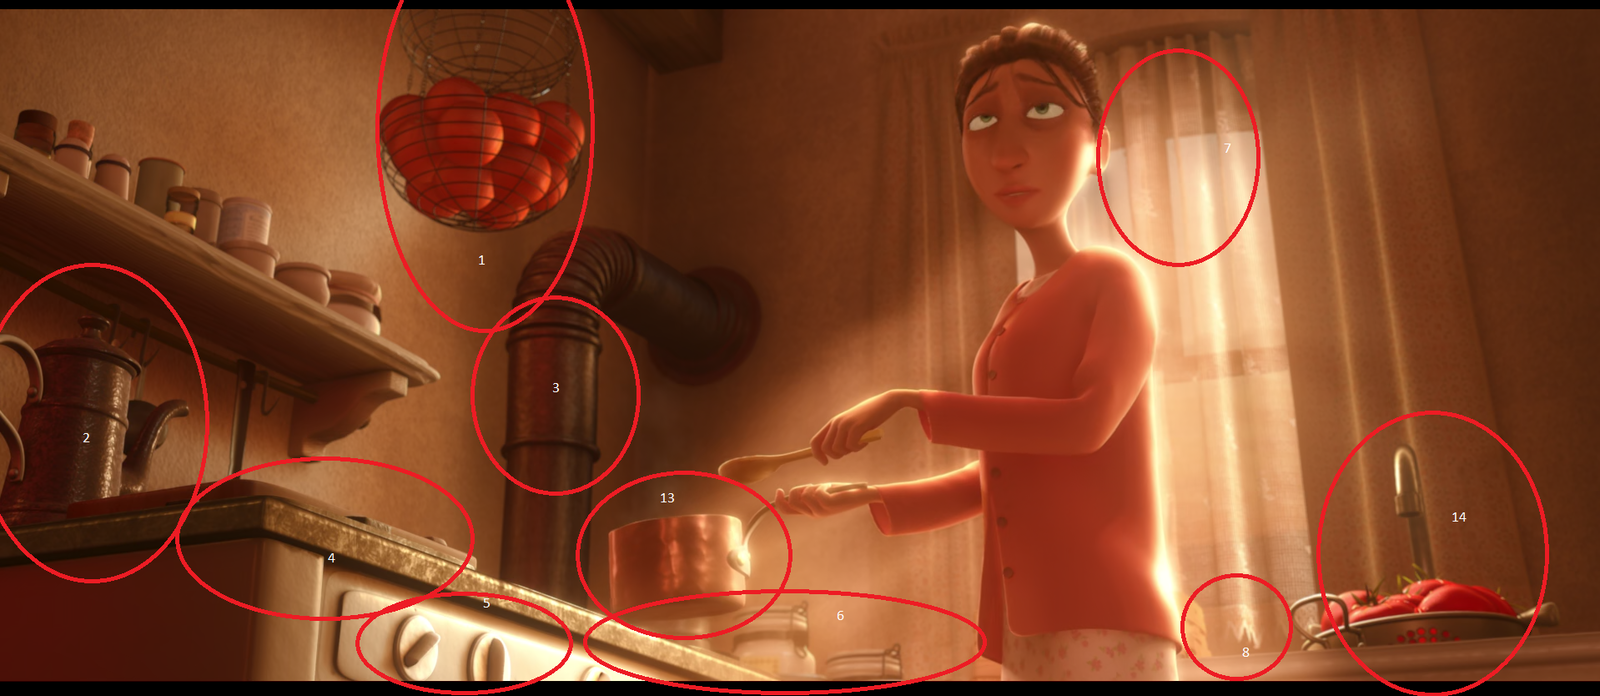 Prepare For Your Mind To Be Blown By This Ratatouille Fan Theory That Honestly Makes So Much Sense